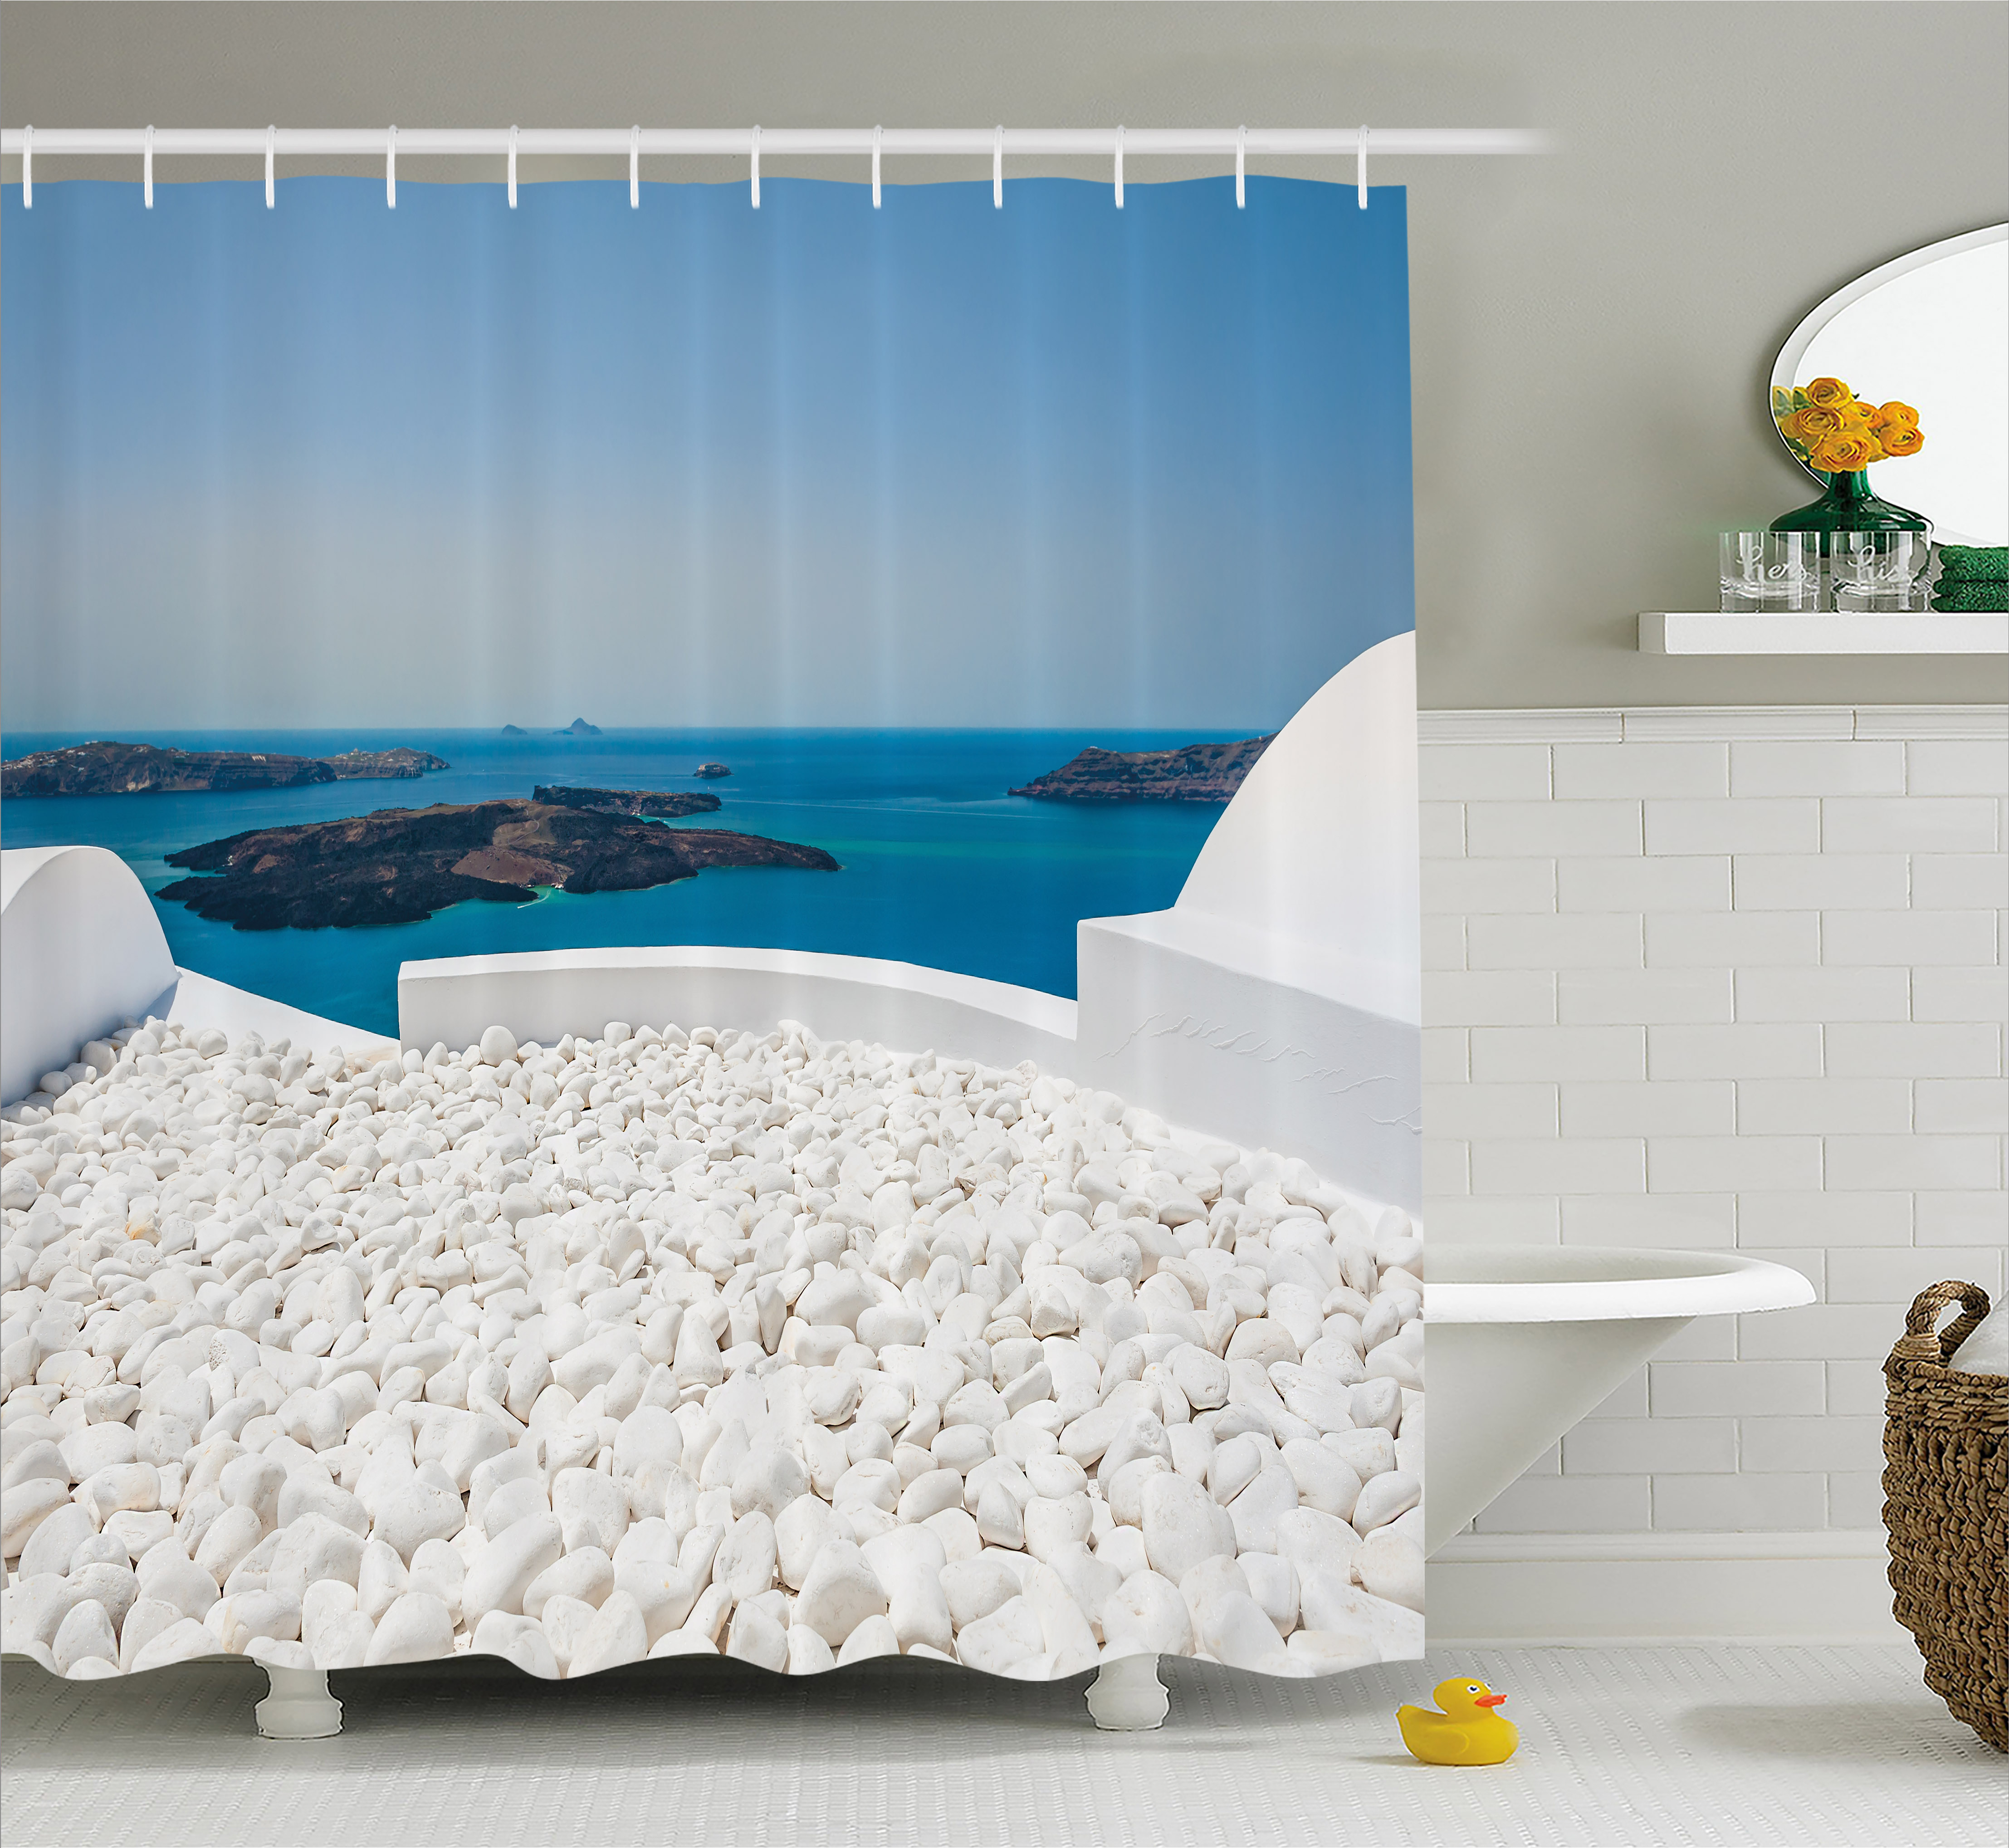 Travel Decor Shower Curtain, Hotel with White Stones Santorini Island Greece Landscape with Sea, Fabric Bathroom Set with Hooks, 69W X 70L Inches, Turquoise and White, by Ambesonne